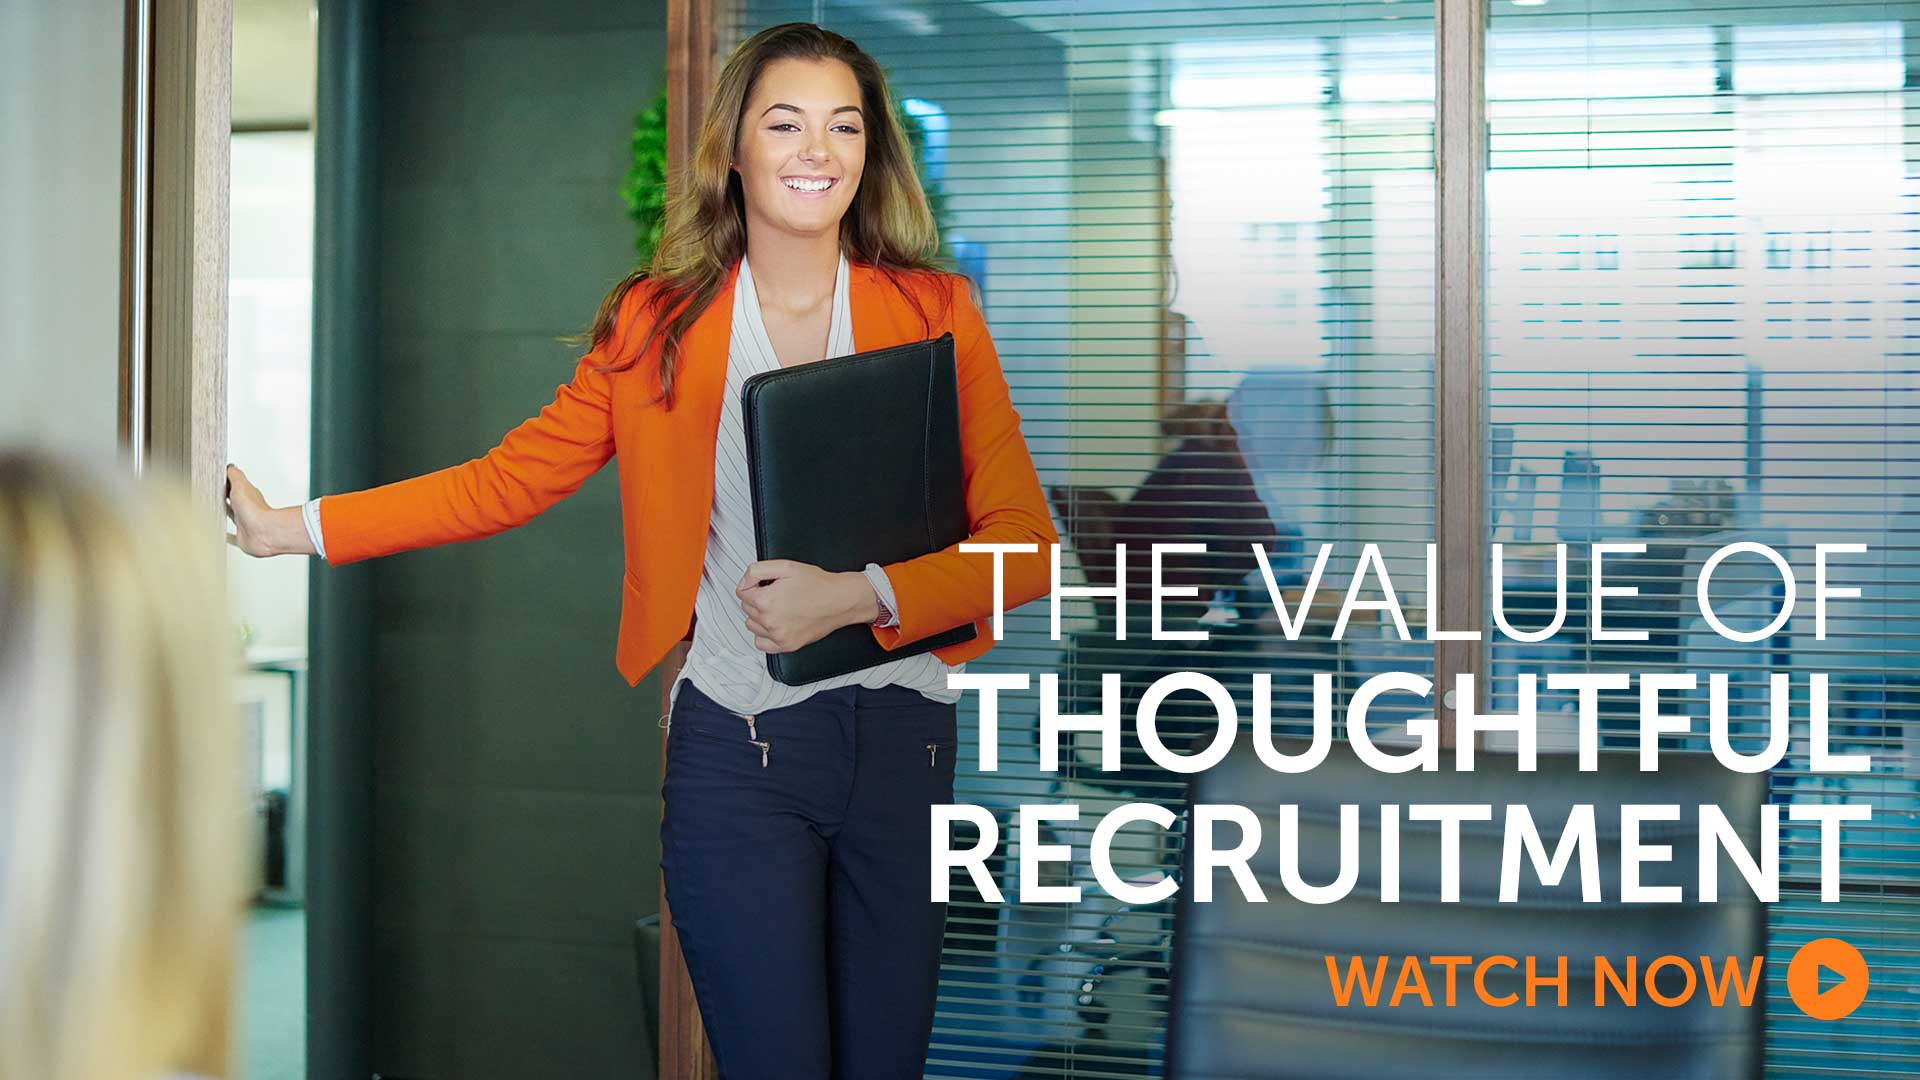 Briefing: The value of thoughtful recruitment